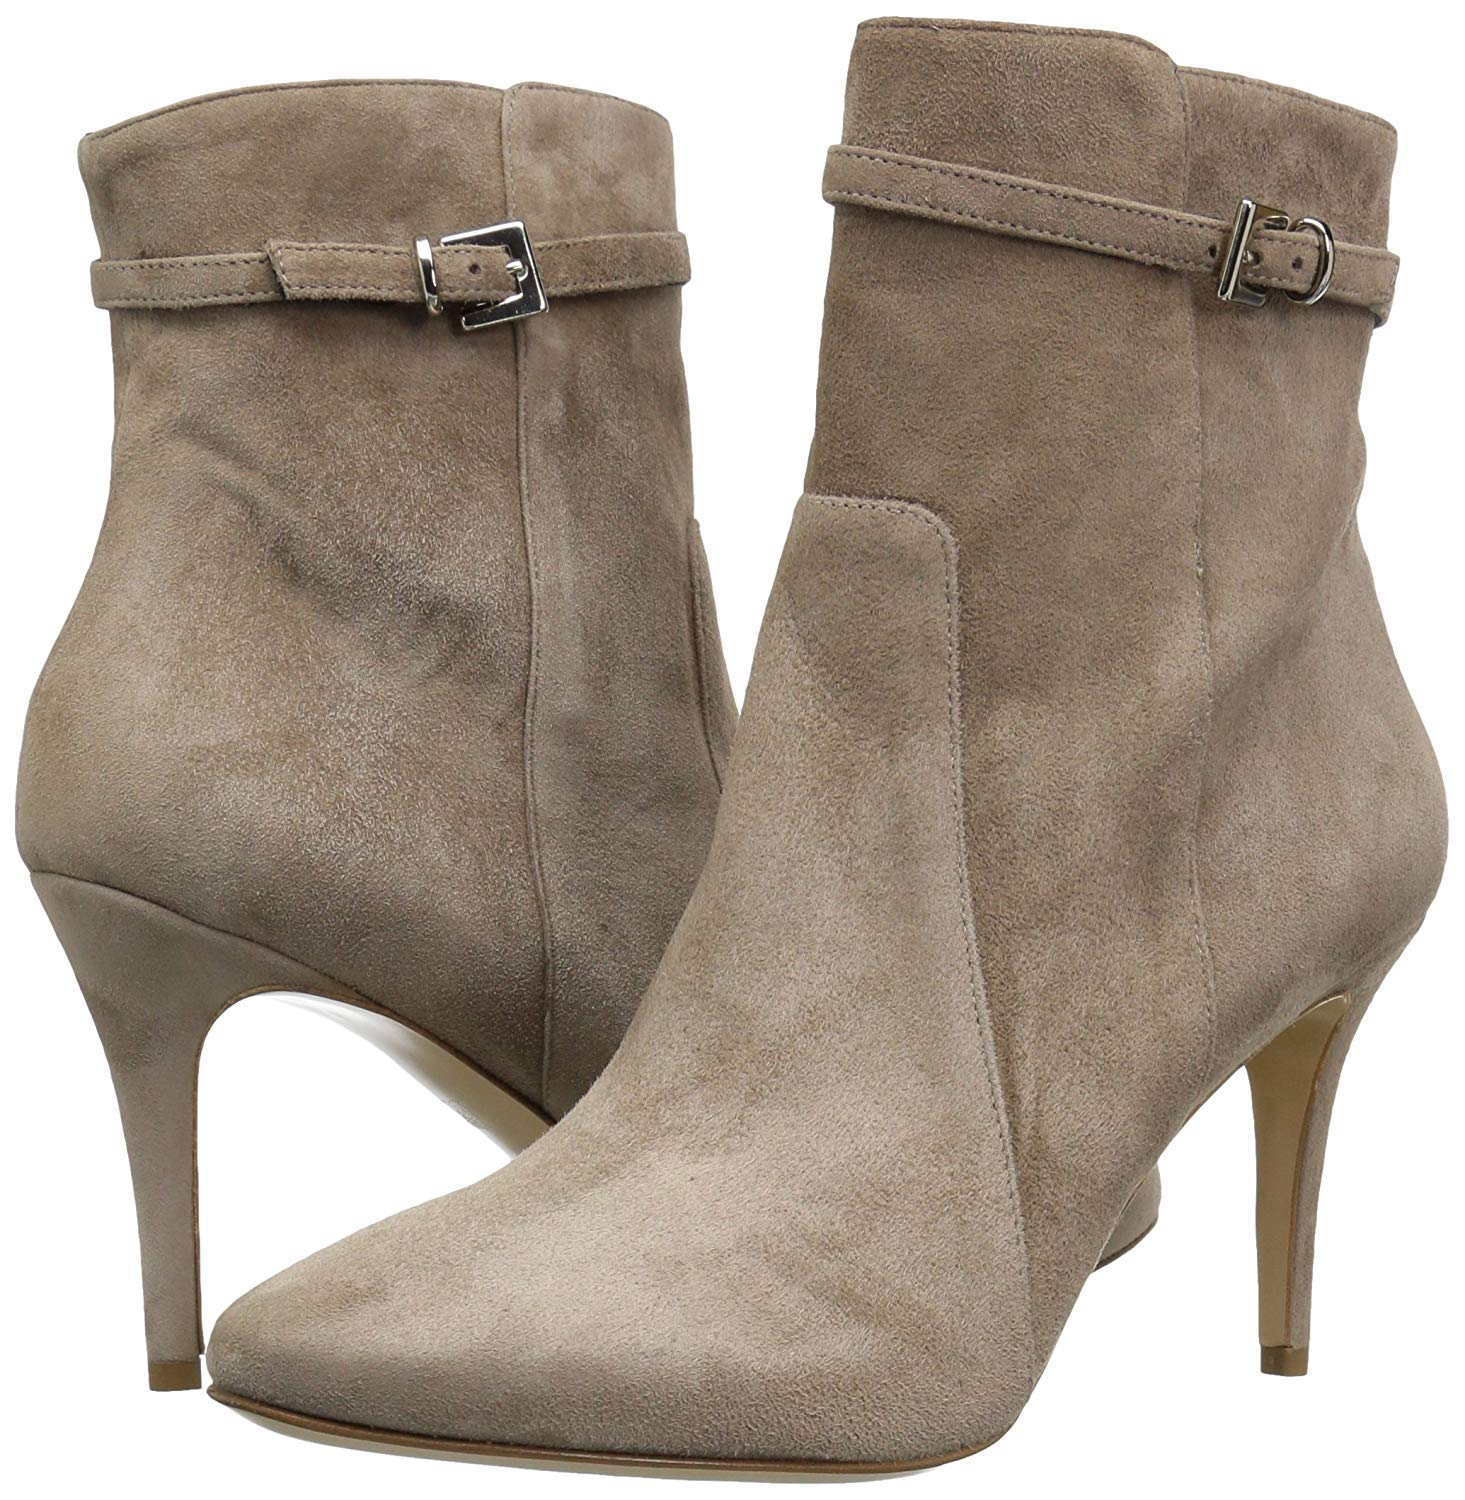 Prism Toe Ankle Fashion Womens Almond Boots Charles Suede David qEn5XR